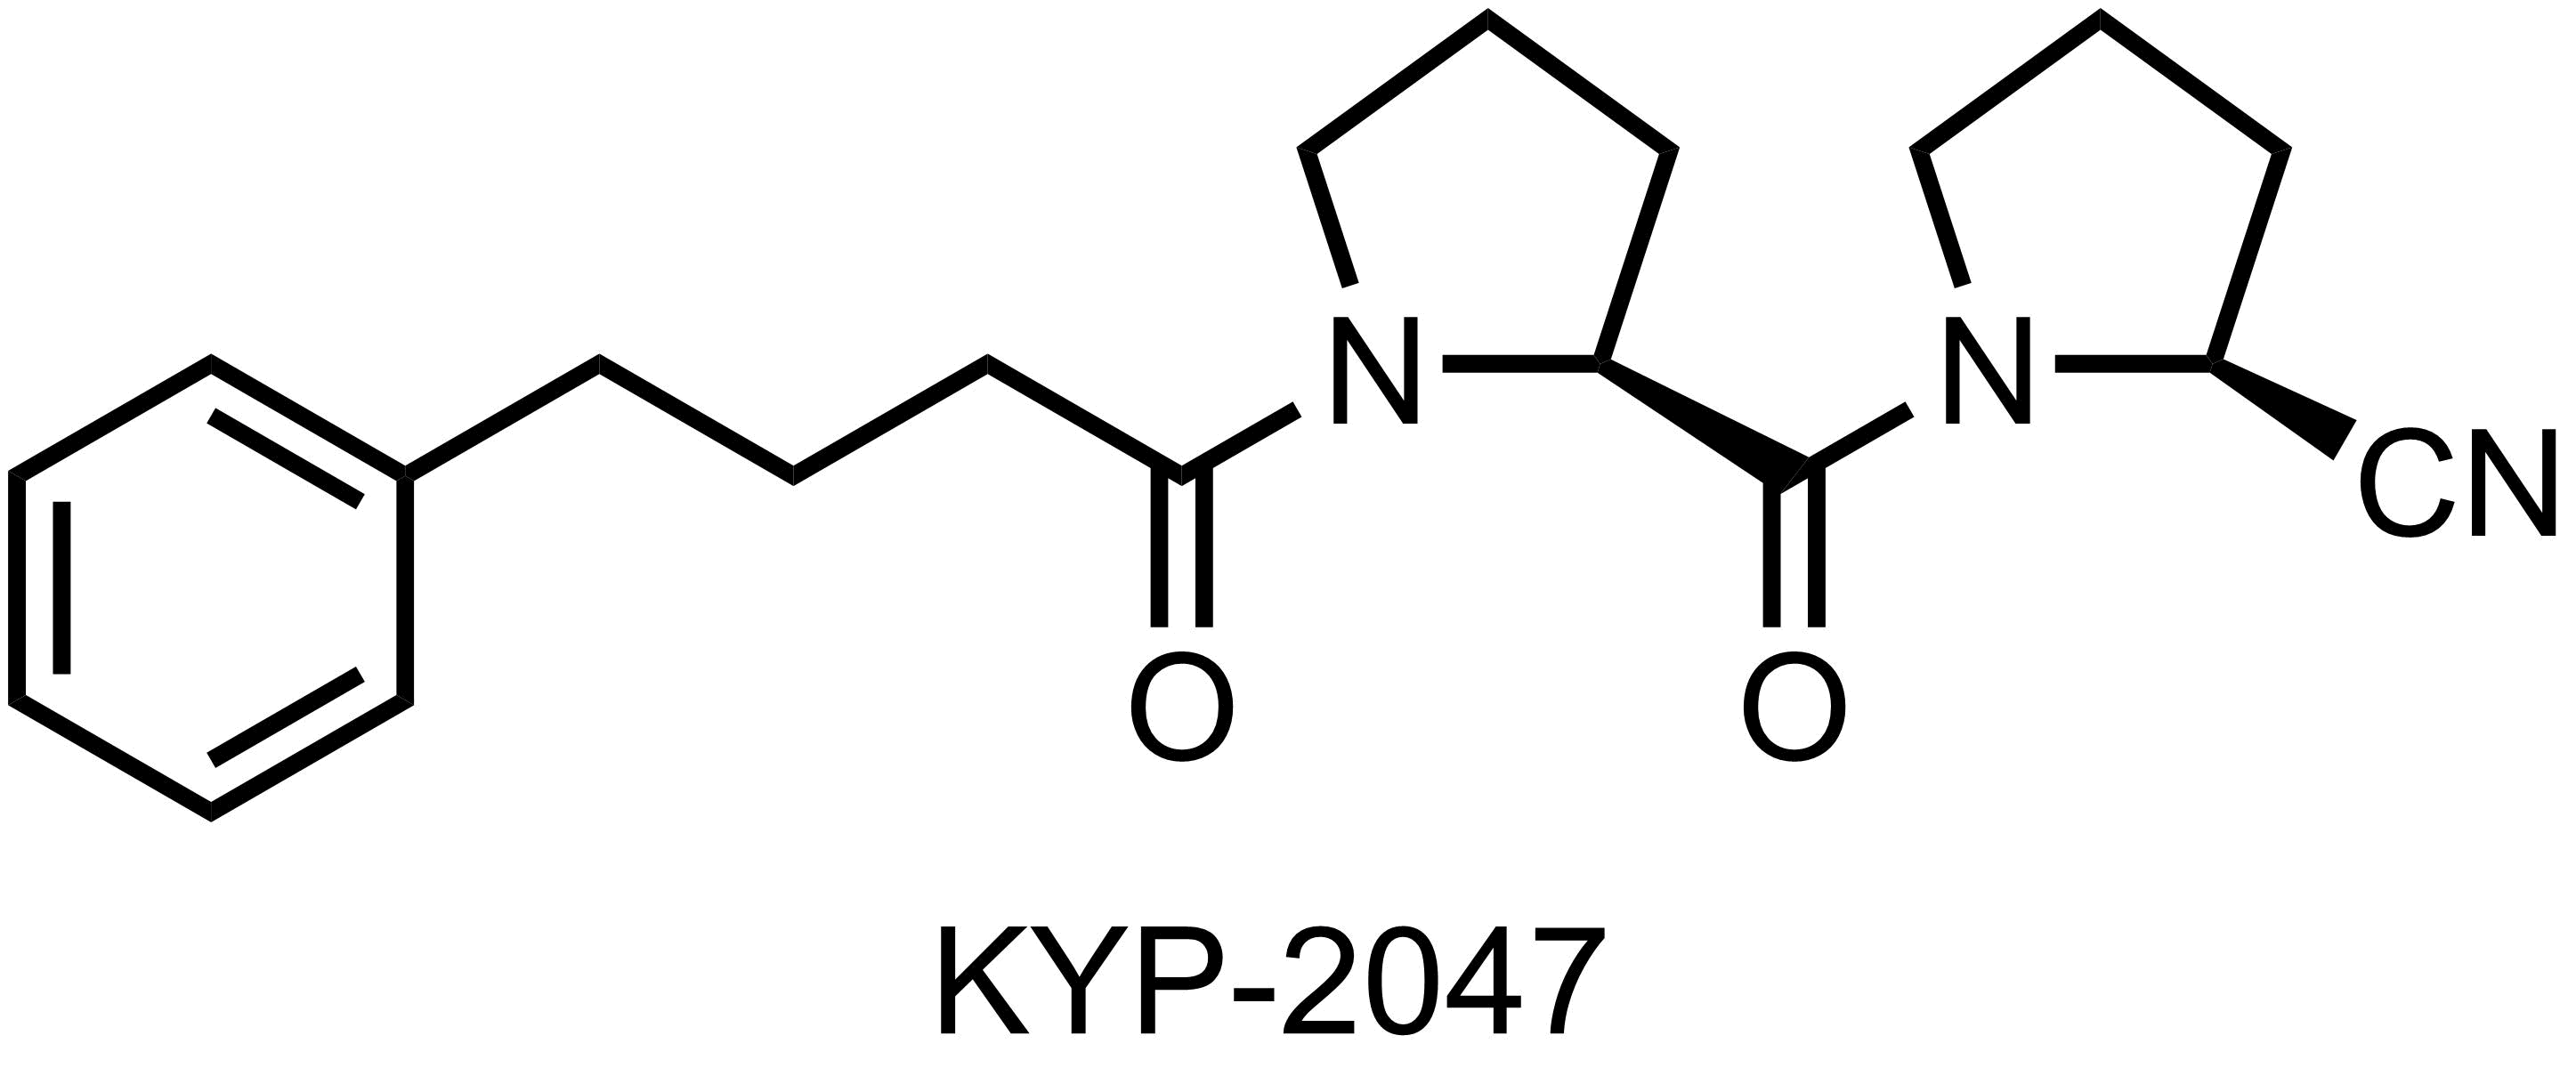 KYP-2047 structure